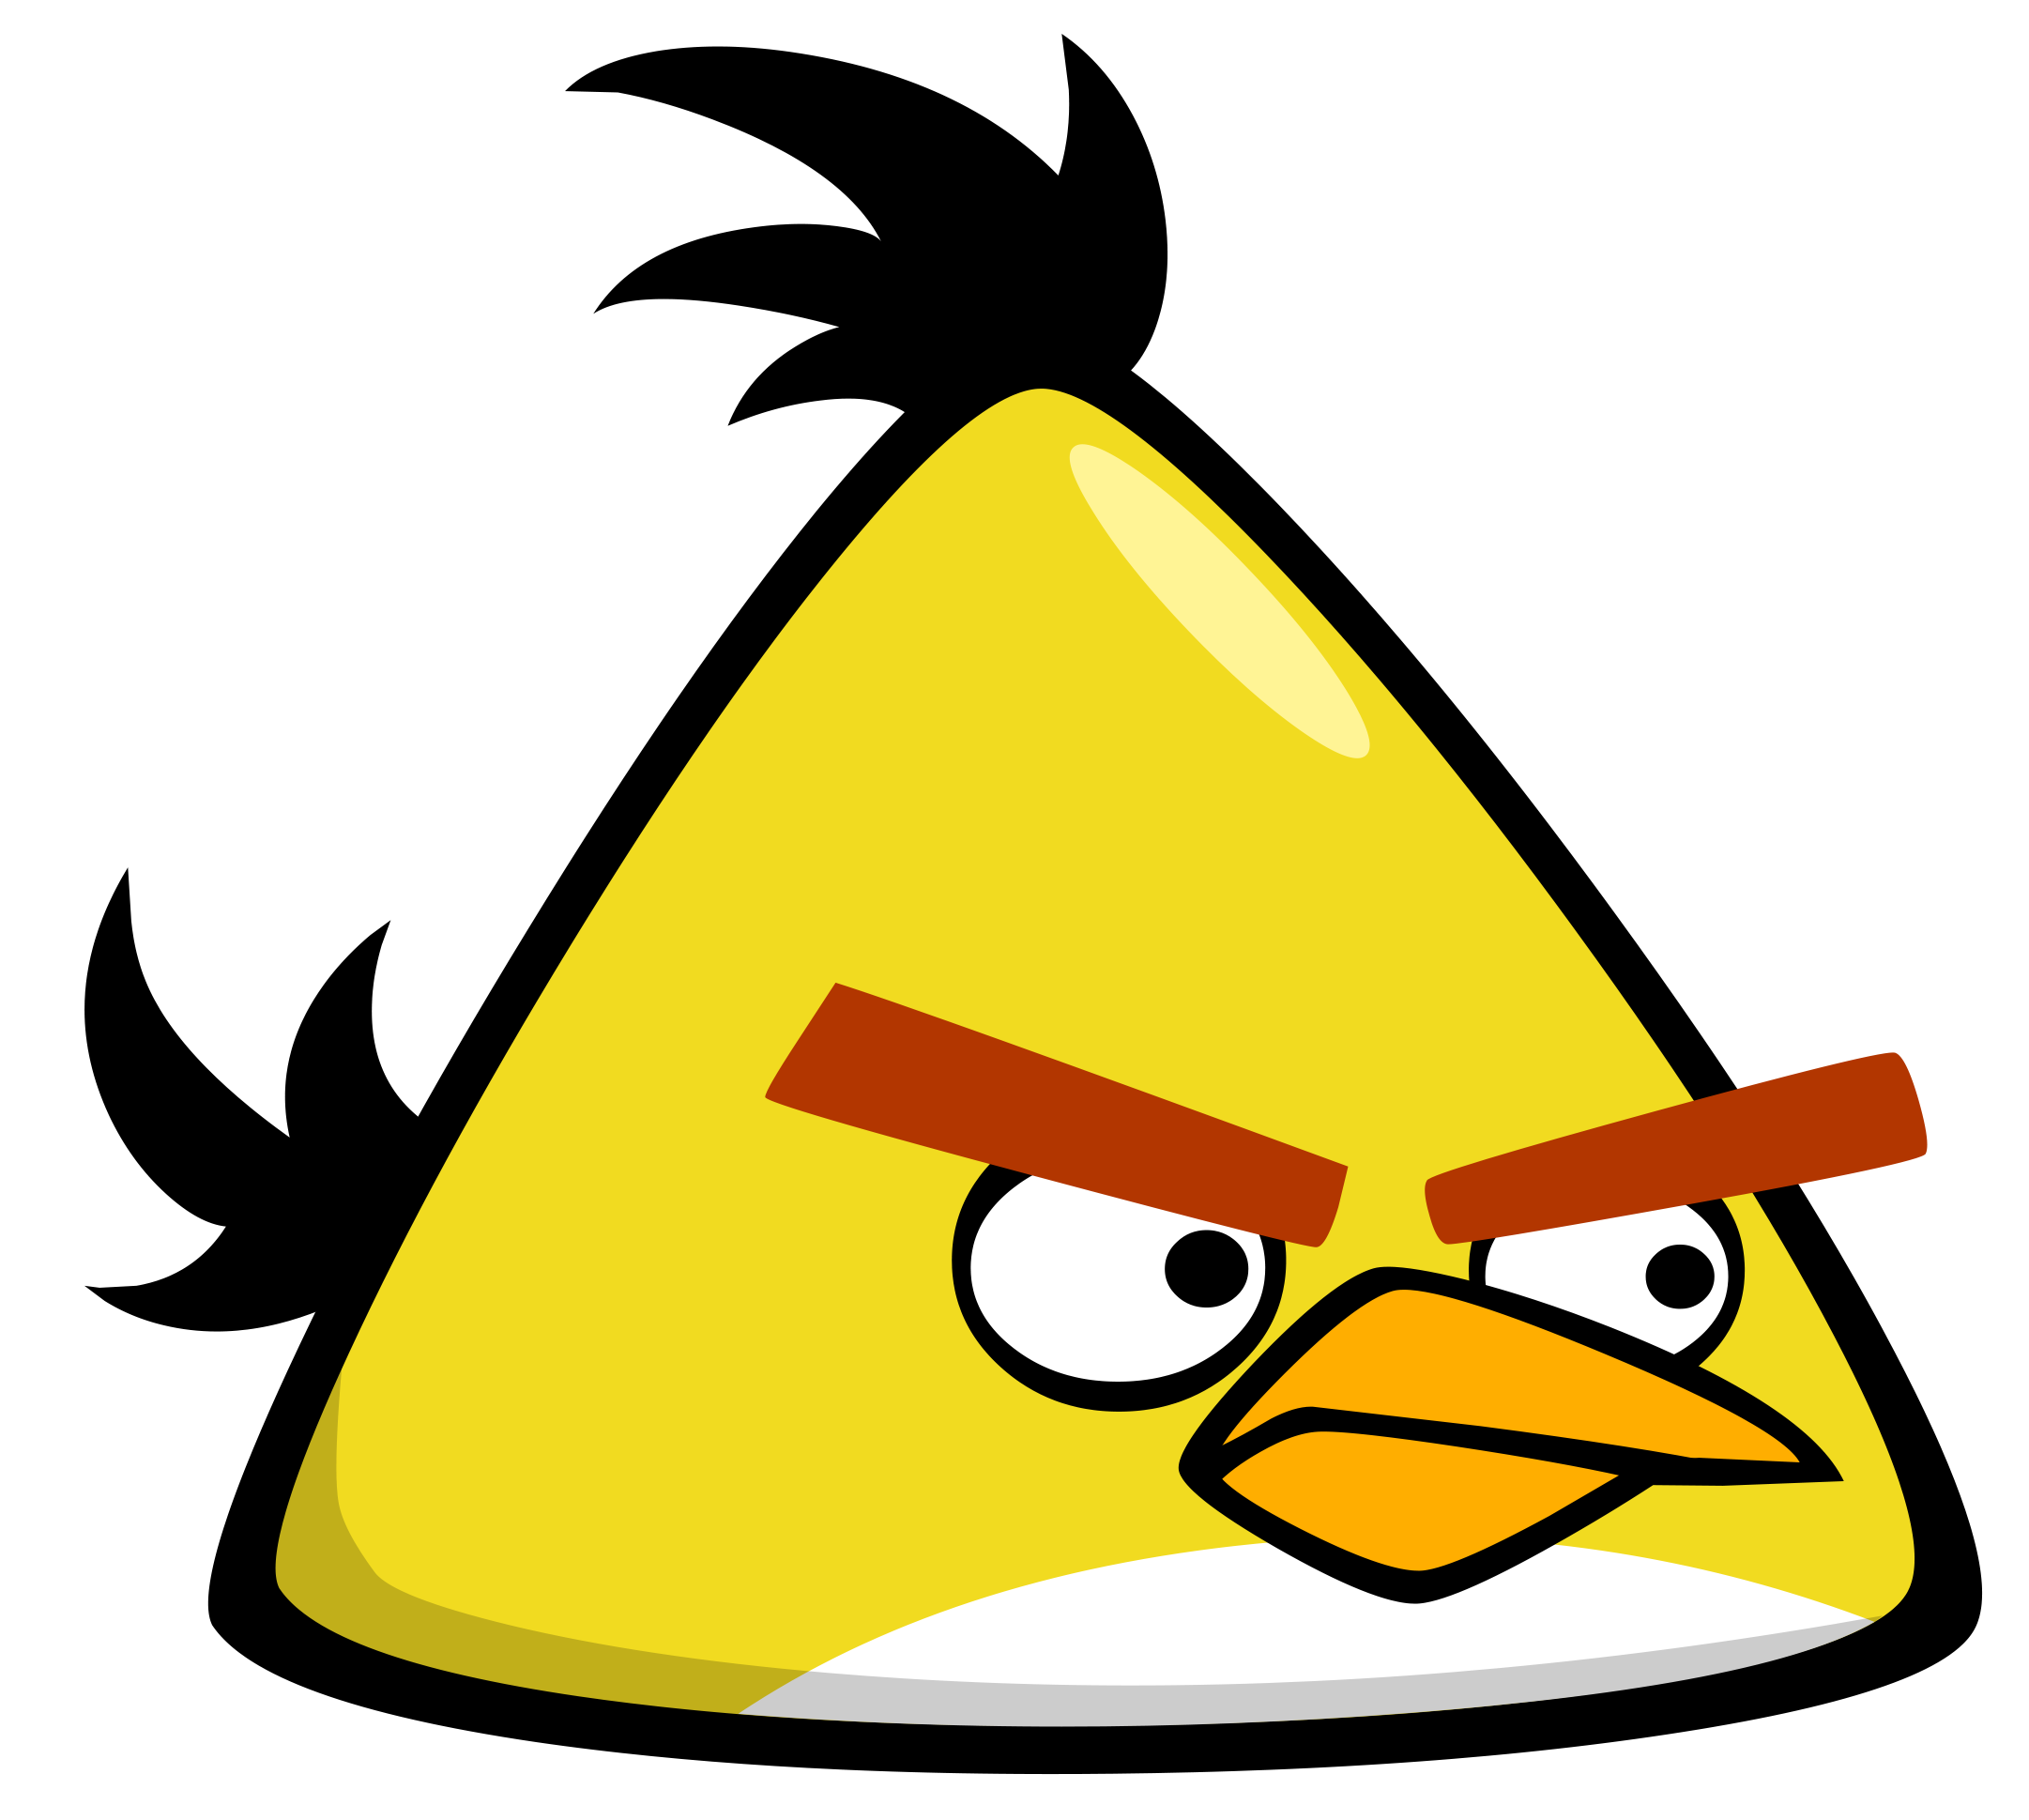 File:Angry bird yellow.png